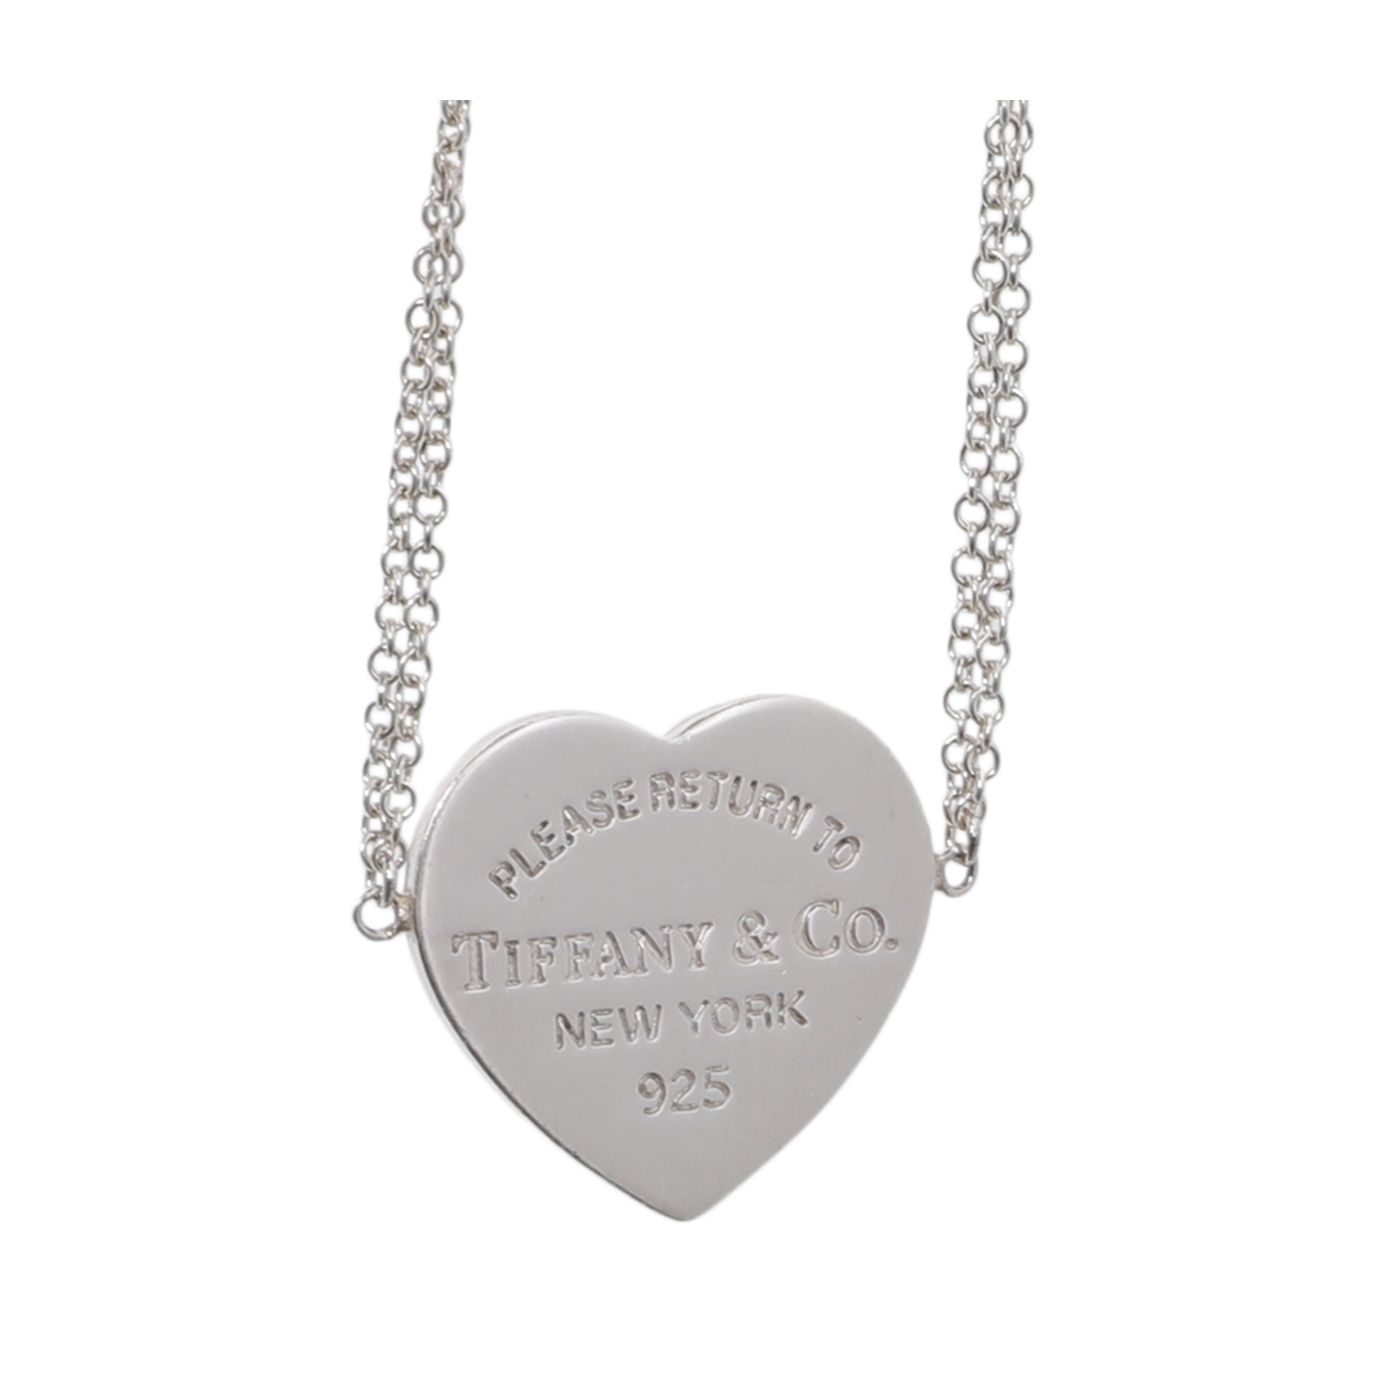 Tiffany & Co Sterling Silver Heart Tag Double Chain Bracelet